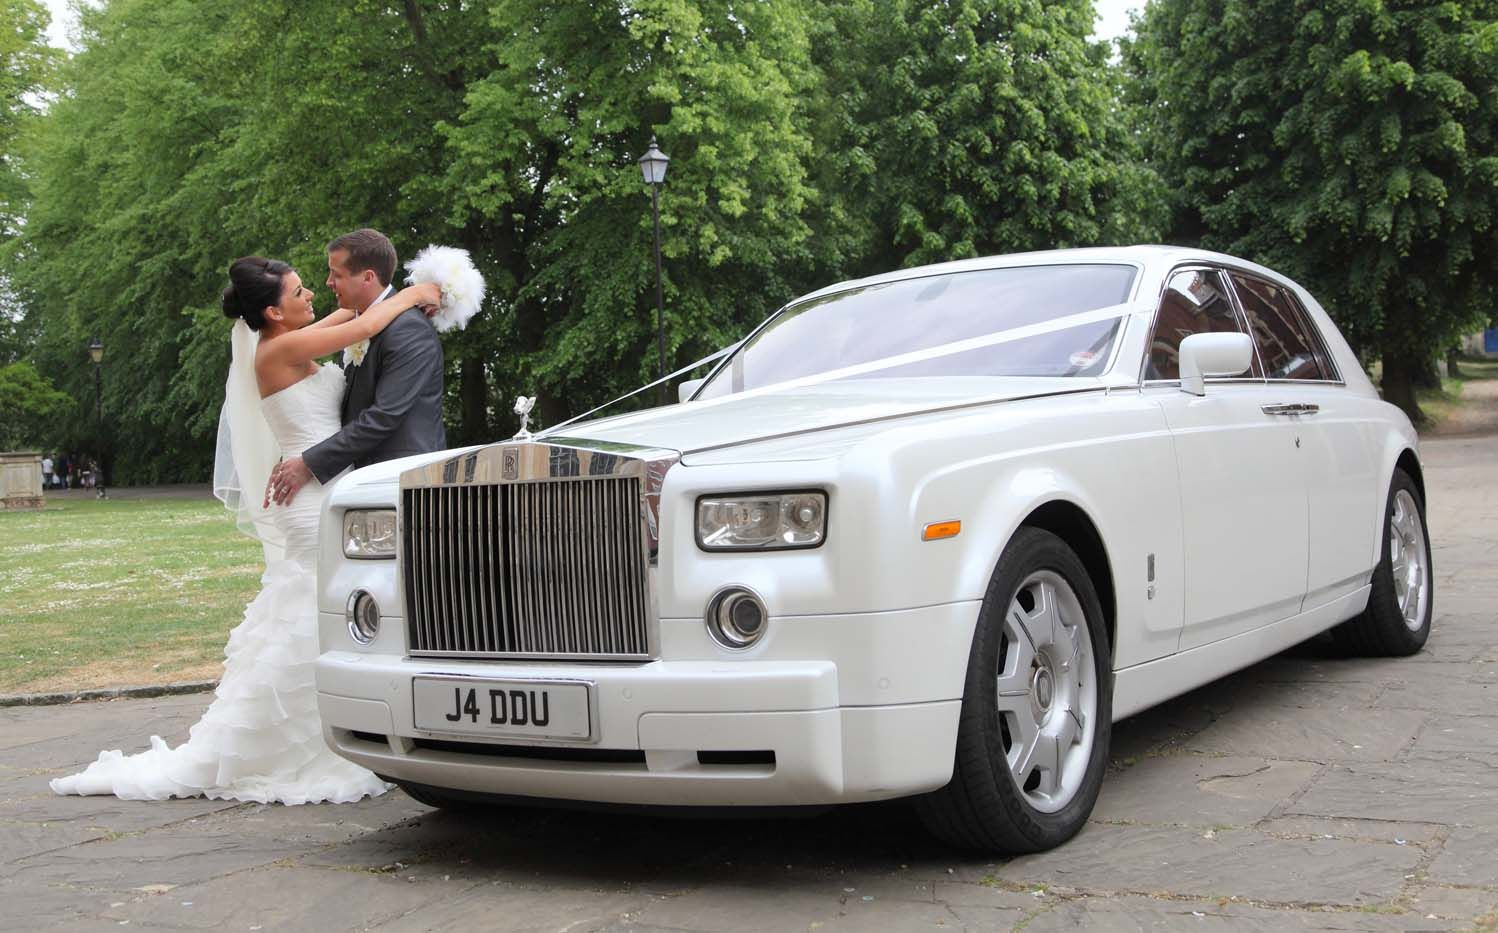 Perfect Wedding Car For Us This Car Is Excellent For Wedding WhereWeddingcouk